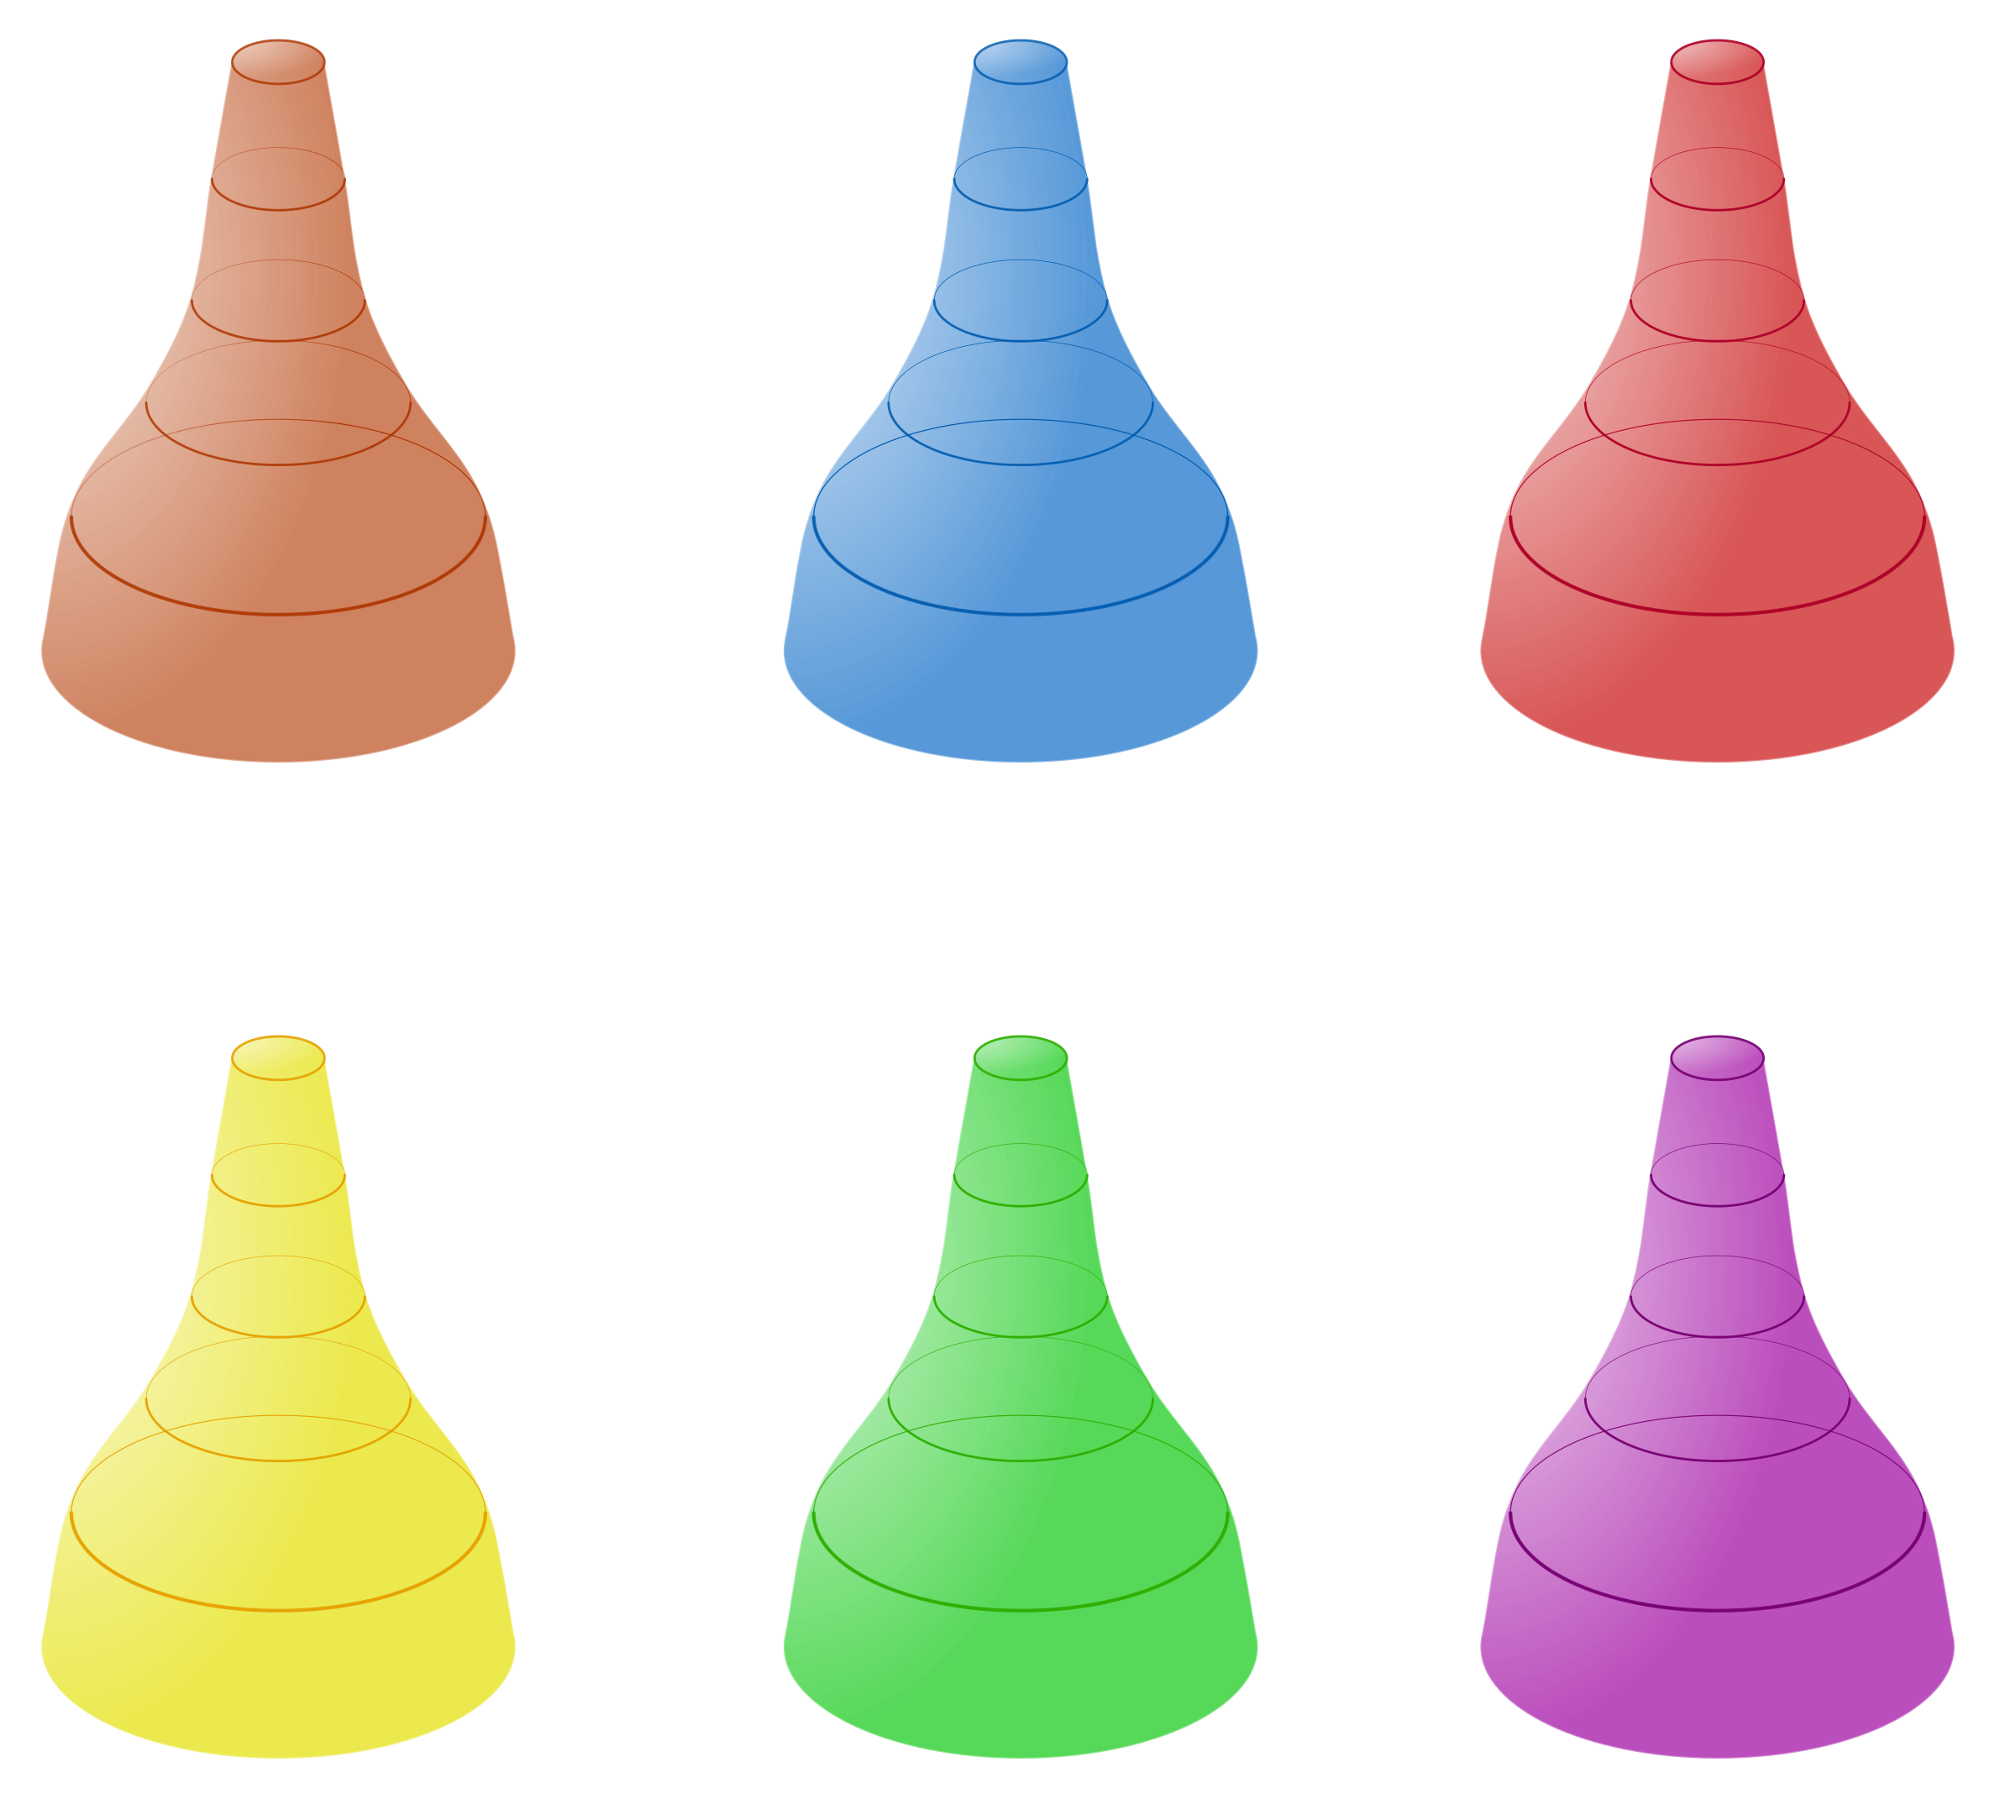 Markers big image png. Game clipart game piece